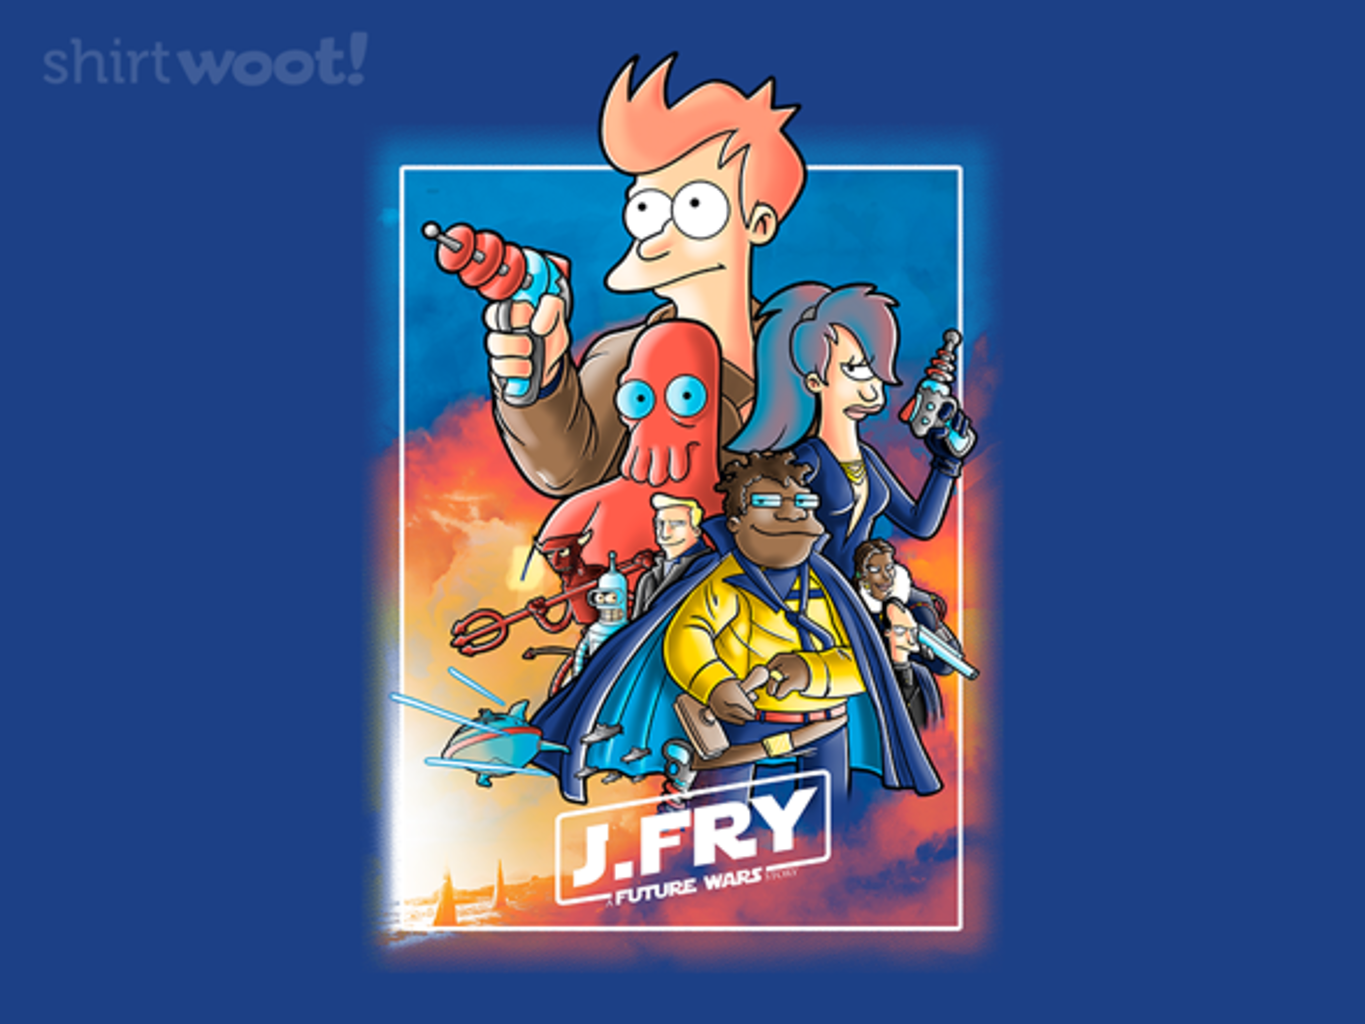 Woot!: A Future Wars Story